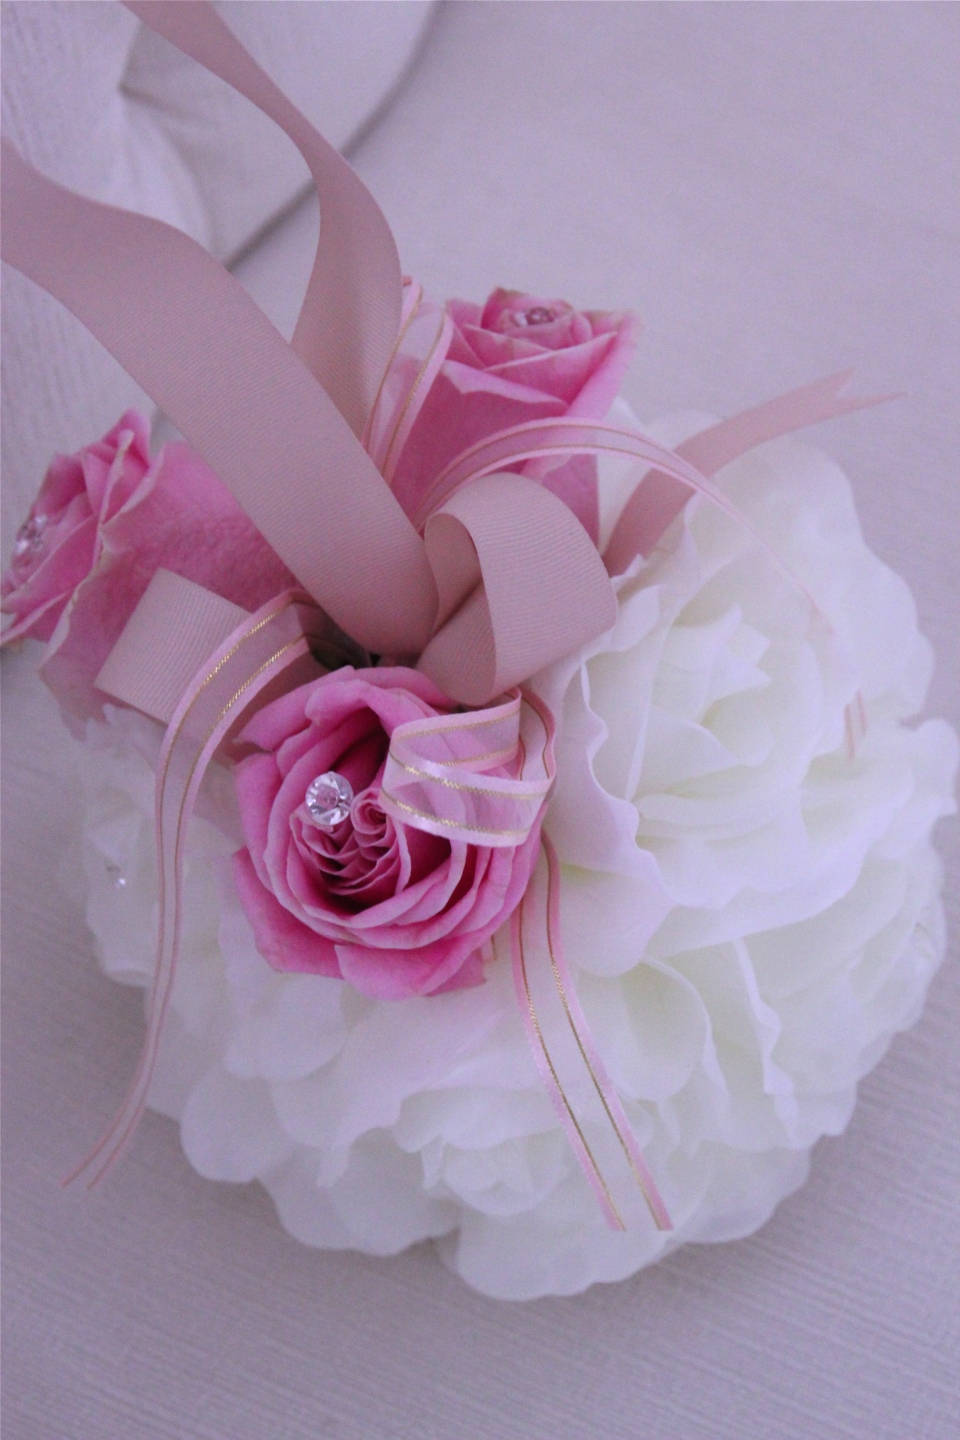 Flower girl pomander with pink roses